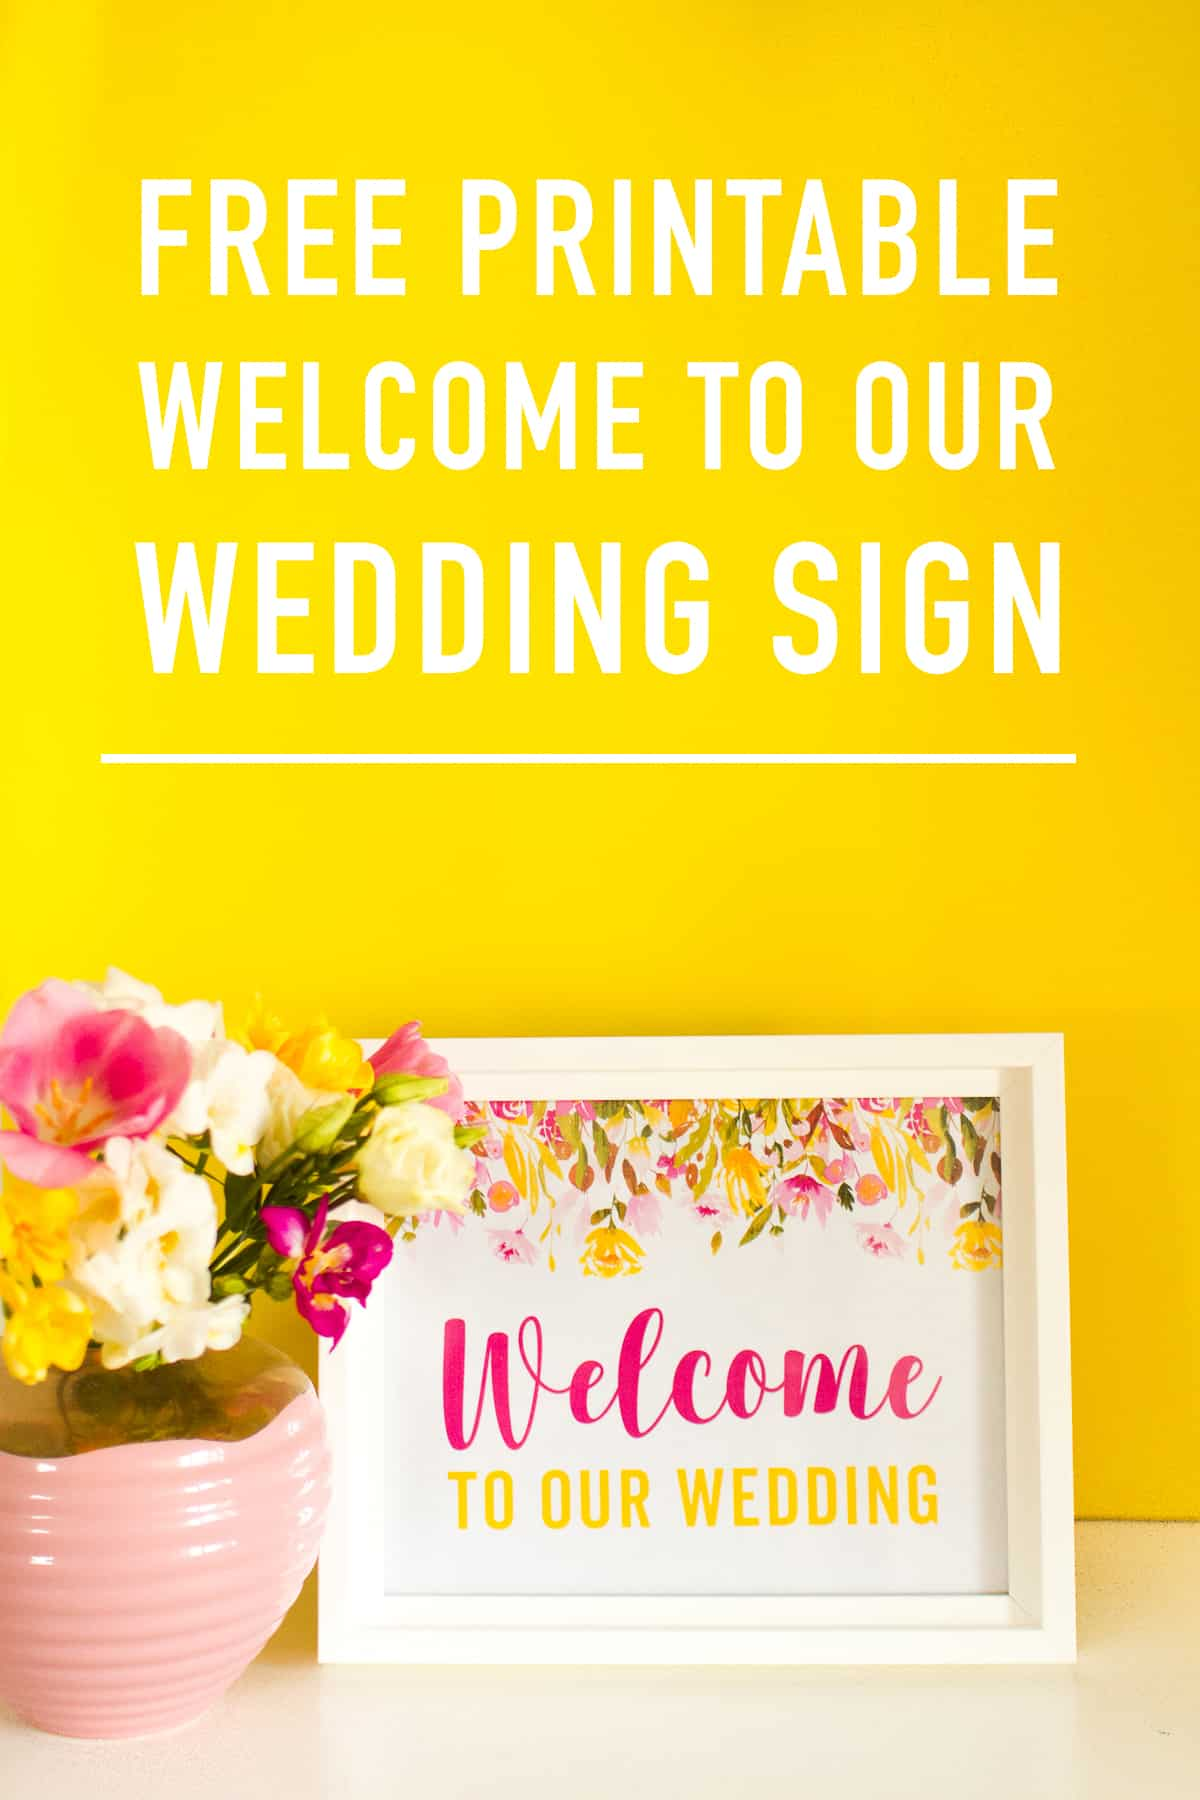 photo relating to Free Printable Welcome Sign named Absolutely free PRINTABLE WELCOME In direction of OUR Marriage ceremony Indication SPRING FLORAL